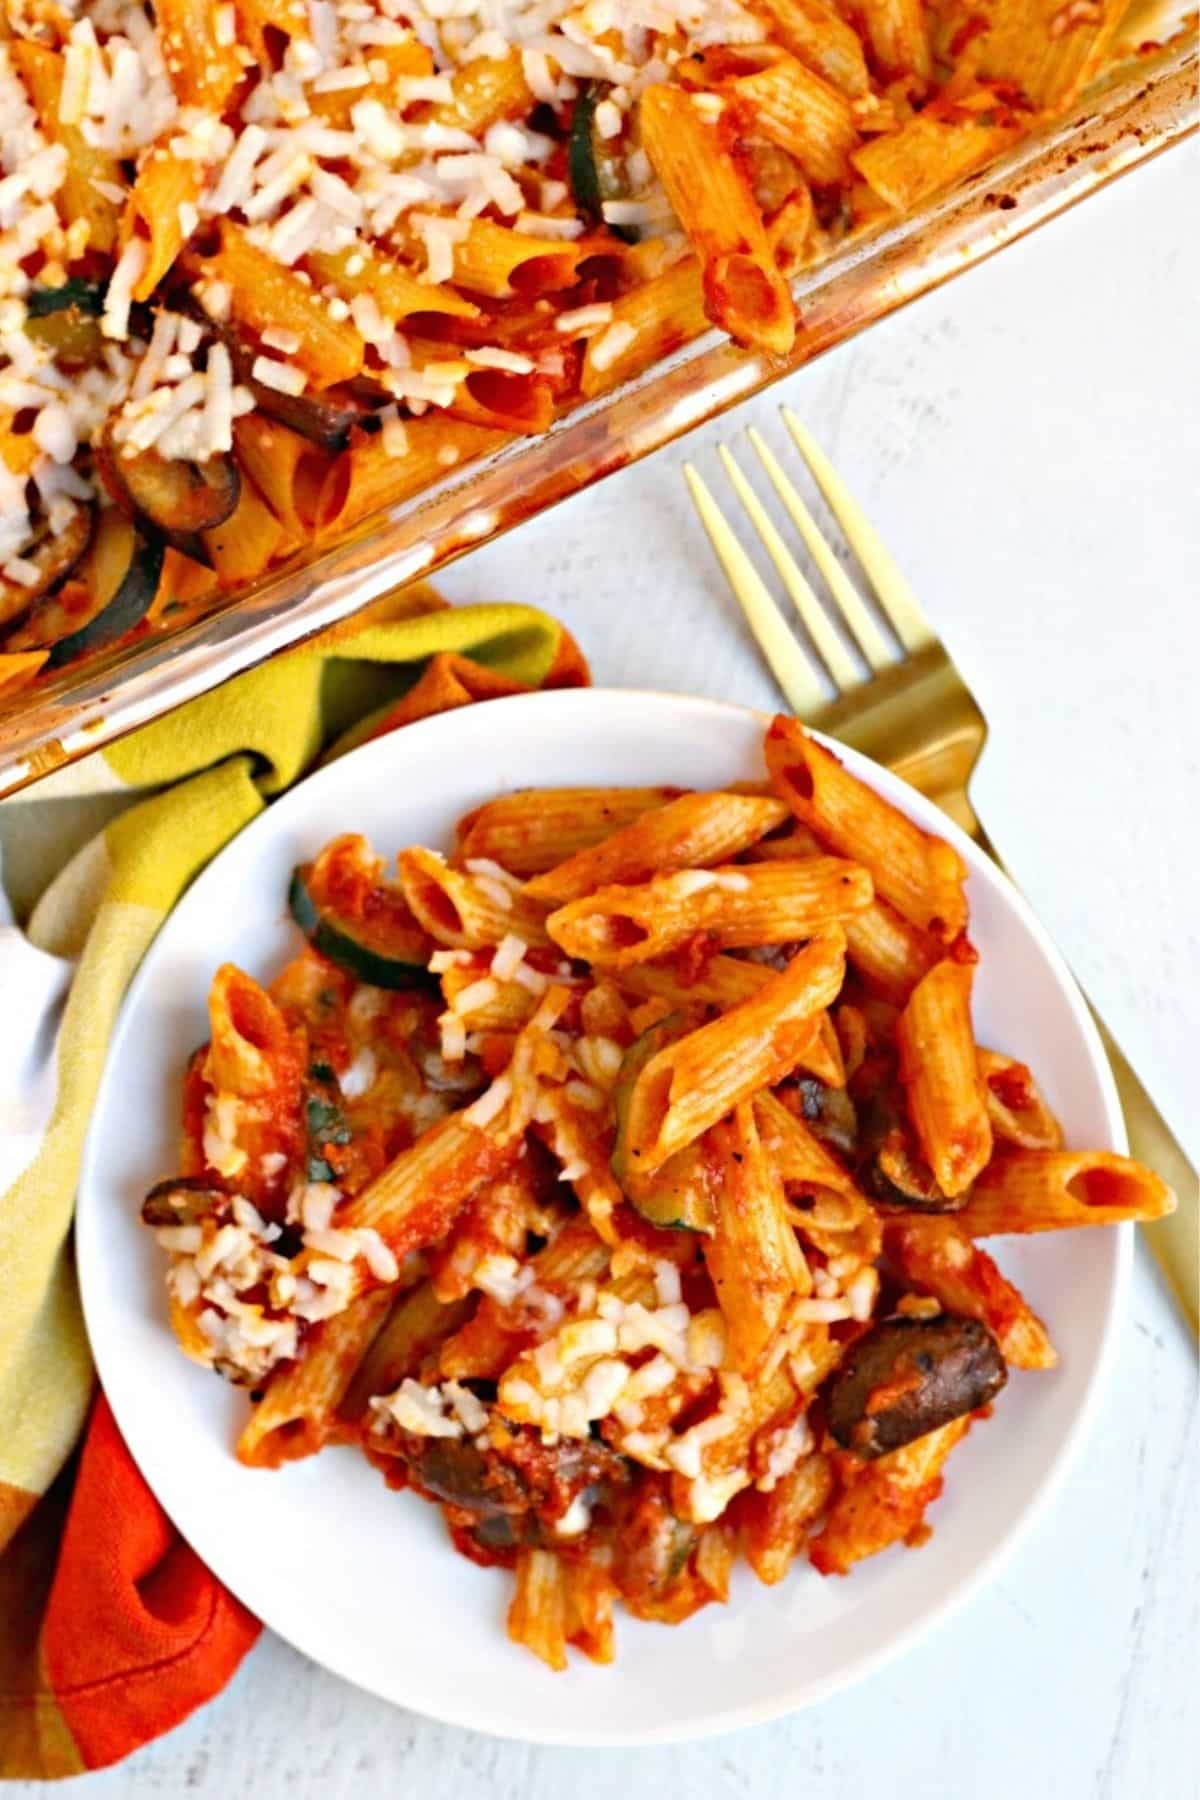 Plate of baked penne pasta with casserole in the background